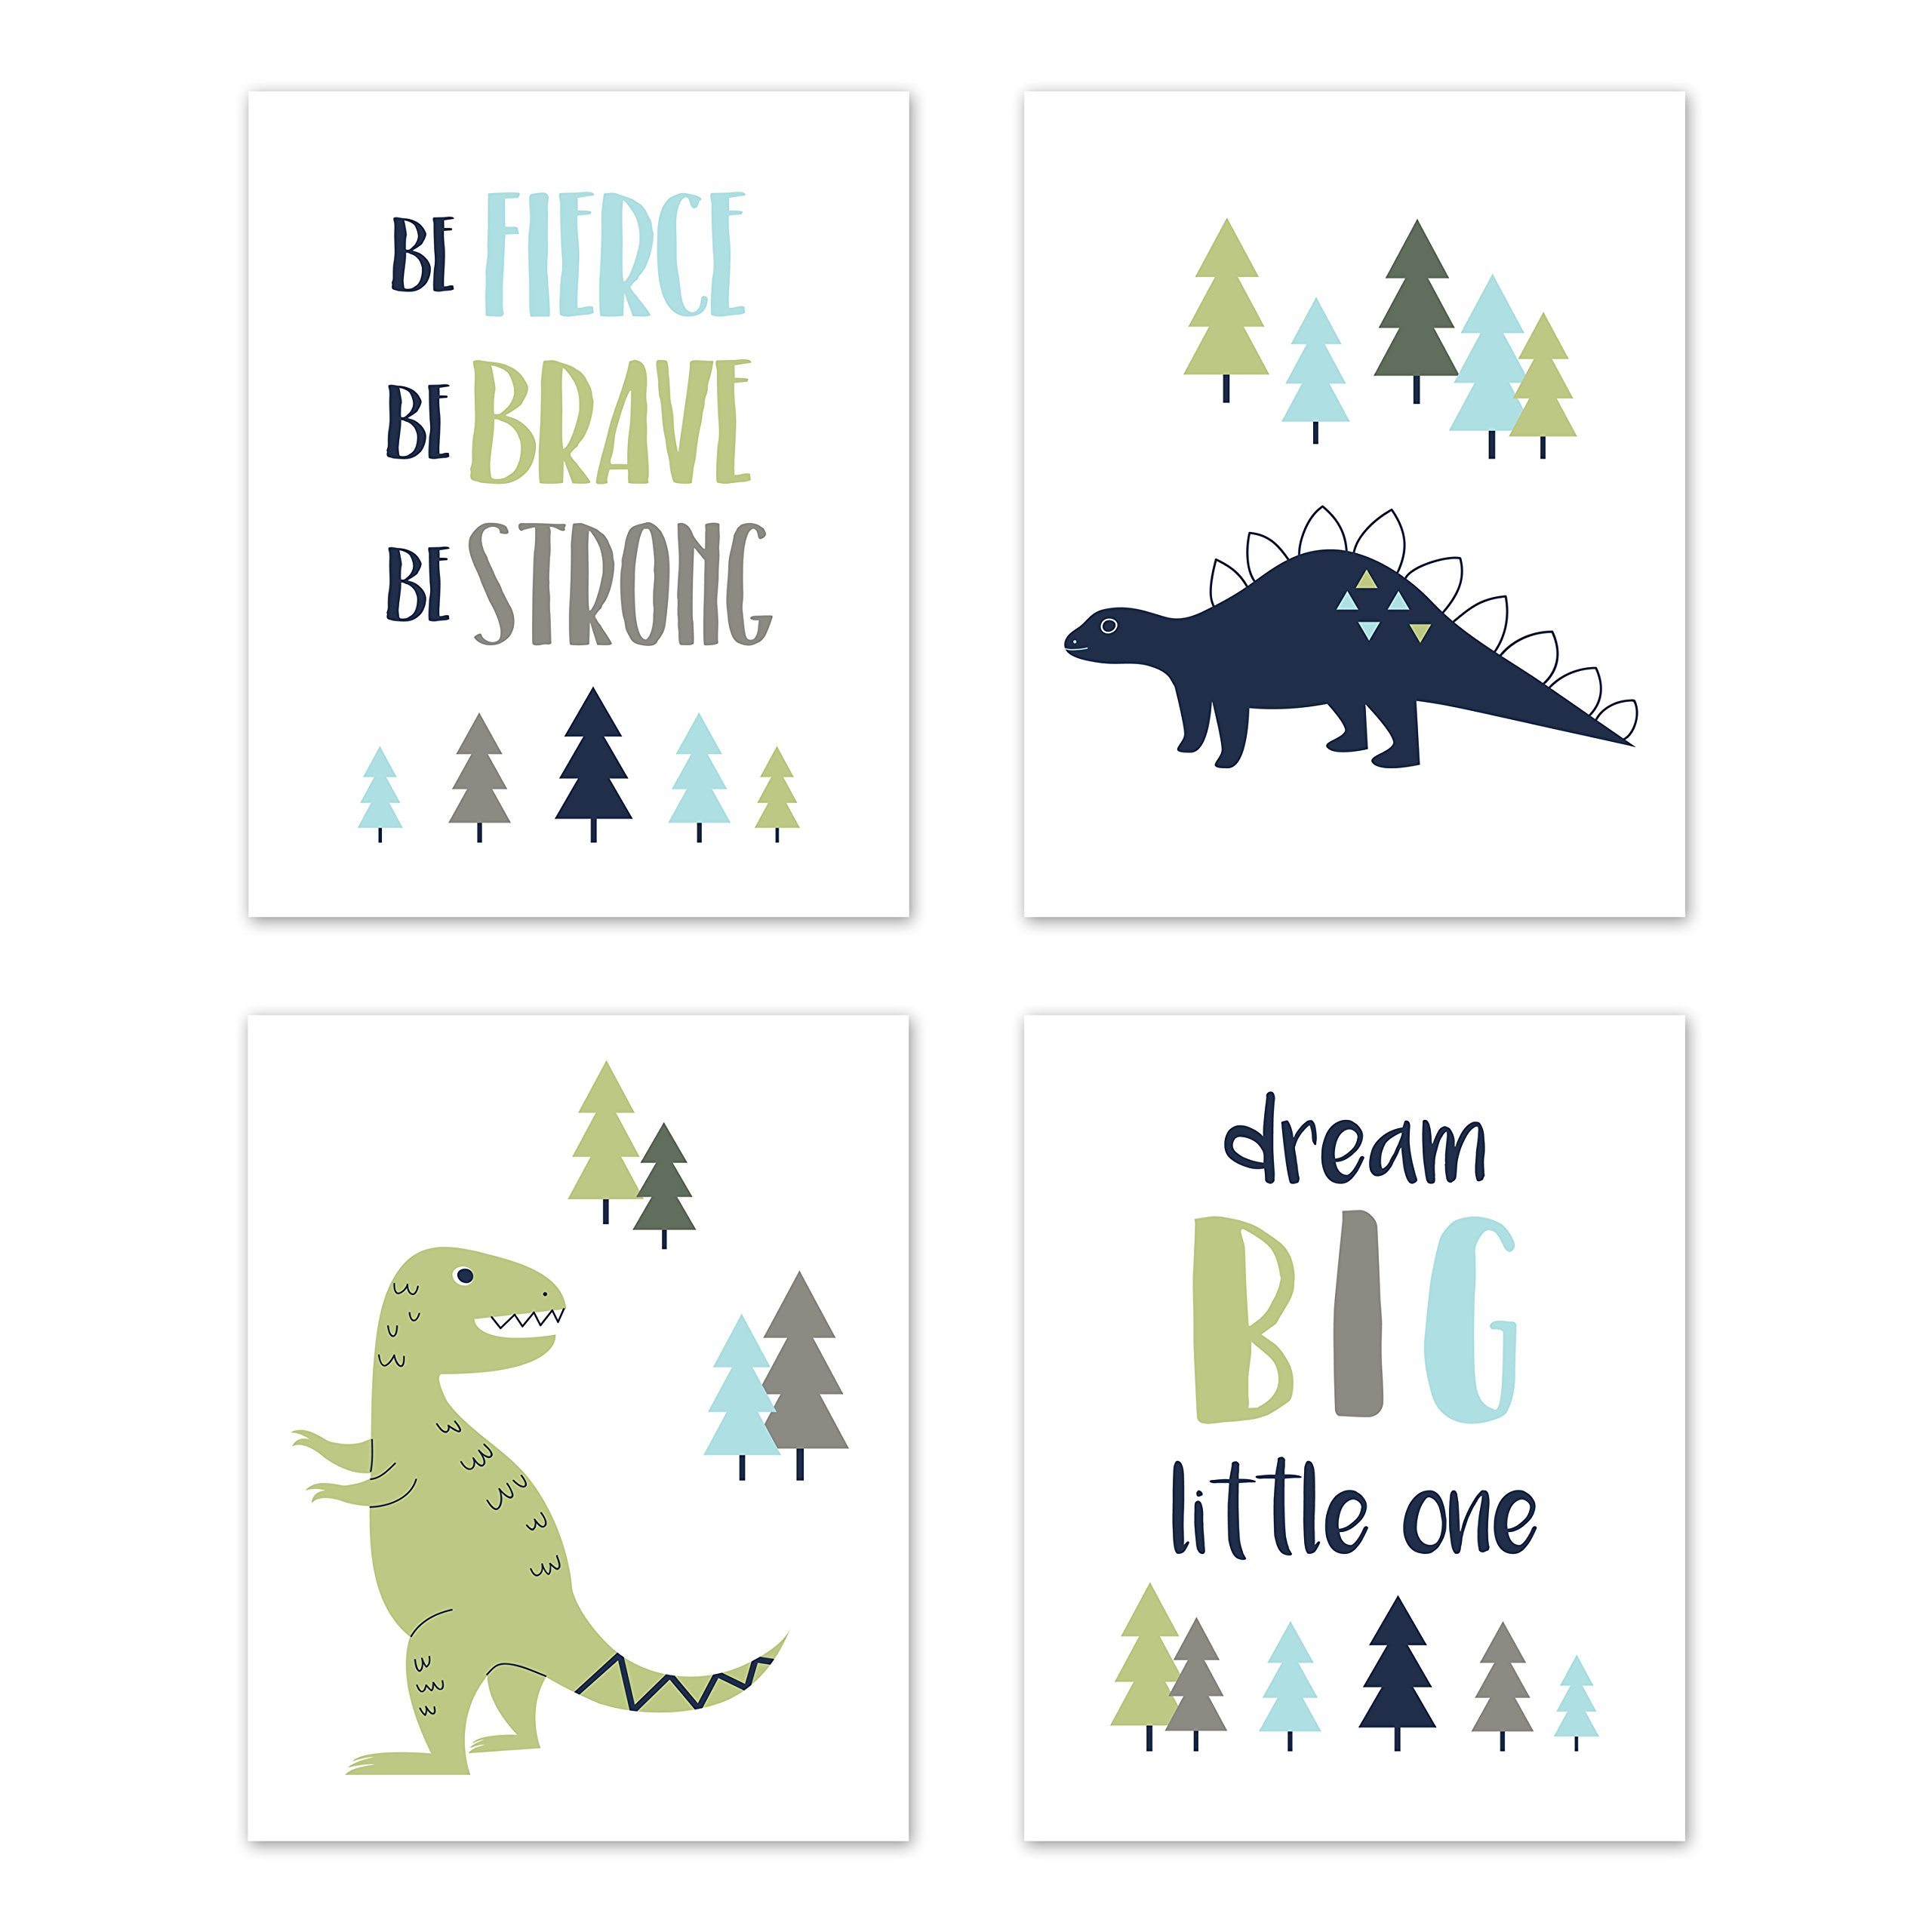 Sweet Jojo Designs Blue and Green Dream Big Dino Wall Art Prints Room Decor for Baby, Nursery, and Kids for Mod Dinosaur Collection - Set of 4 by Sweet Jojo Designs